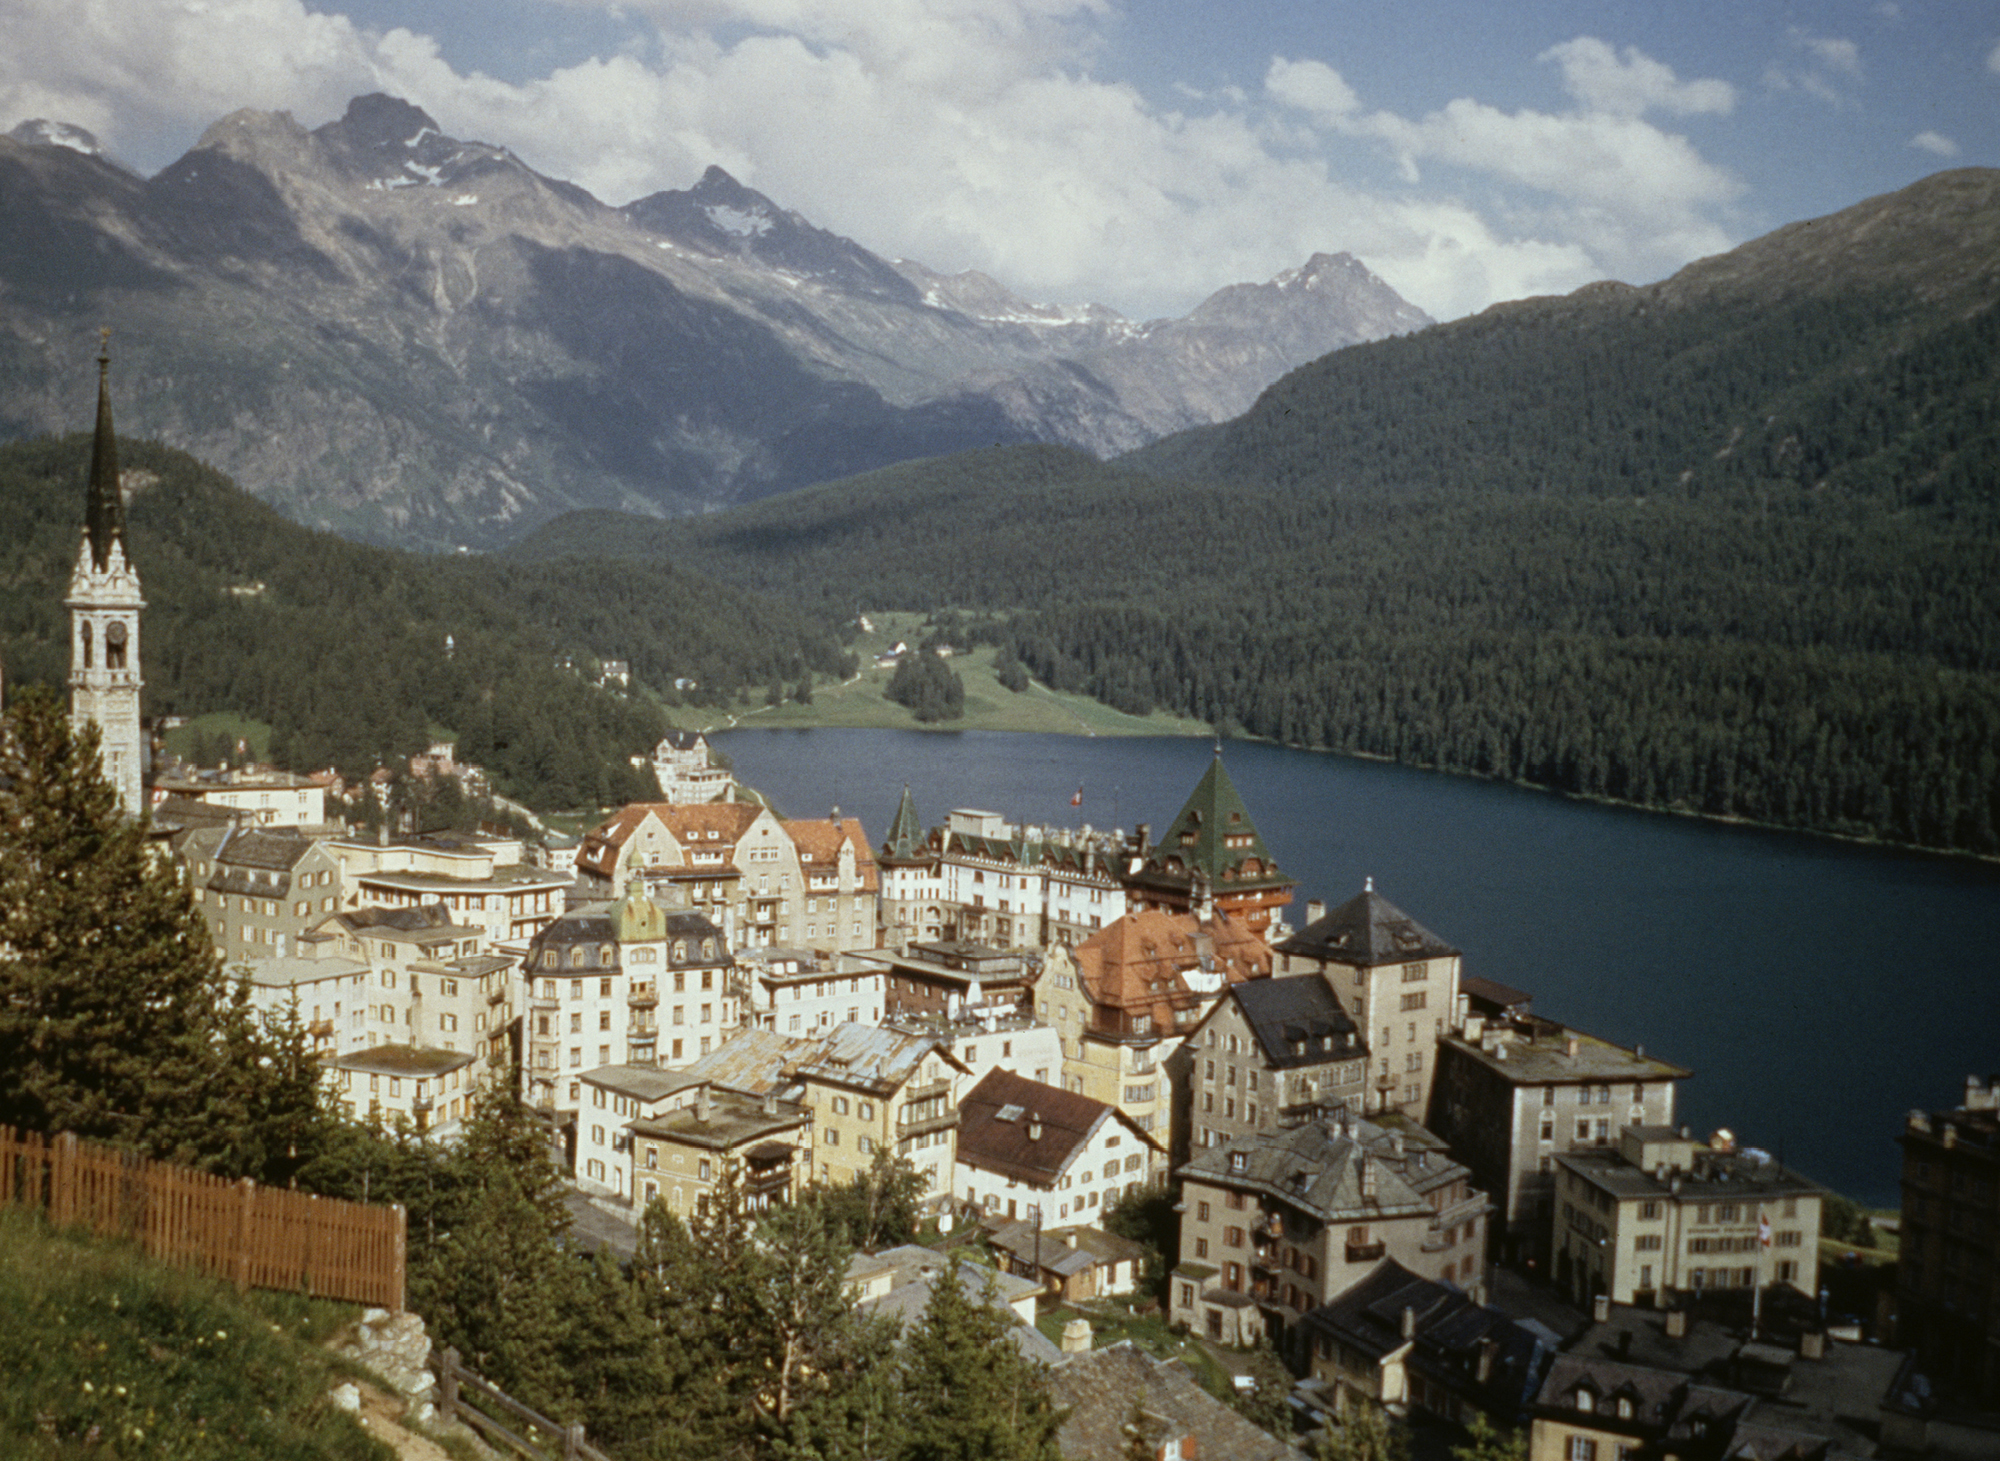 The Swiss resort inspired the original watch